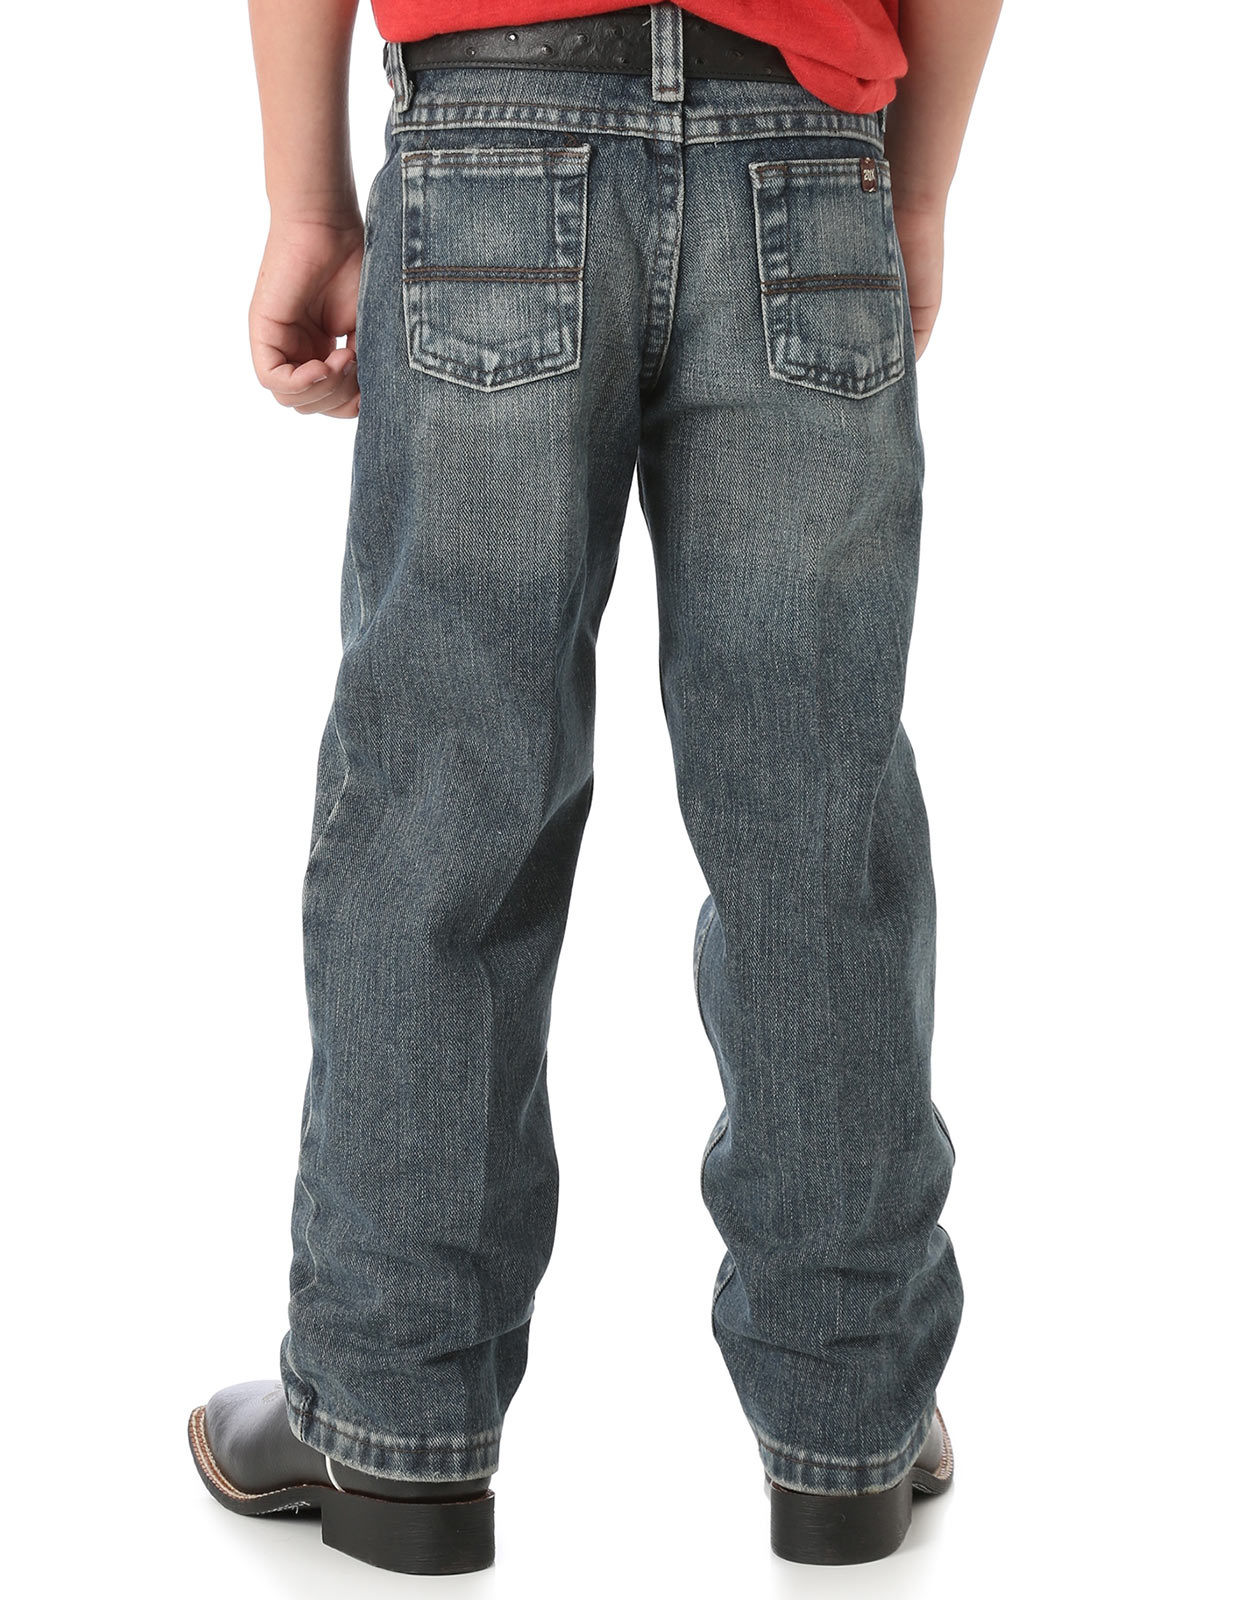 Wrangler Boy's 20X 33 Extreme Mid Rise Loose Fit Straight Leg Jeans (Sizes 1T-7) - Vintage Midnight